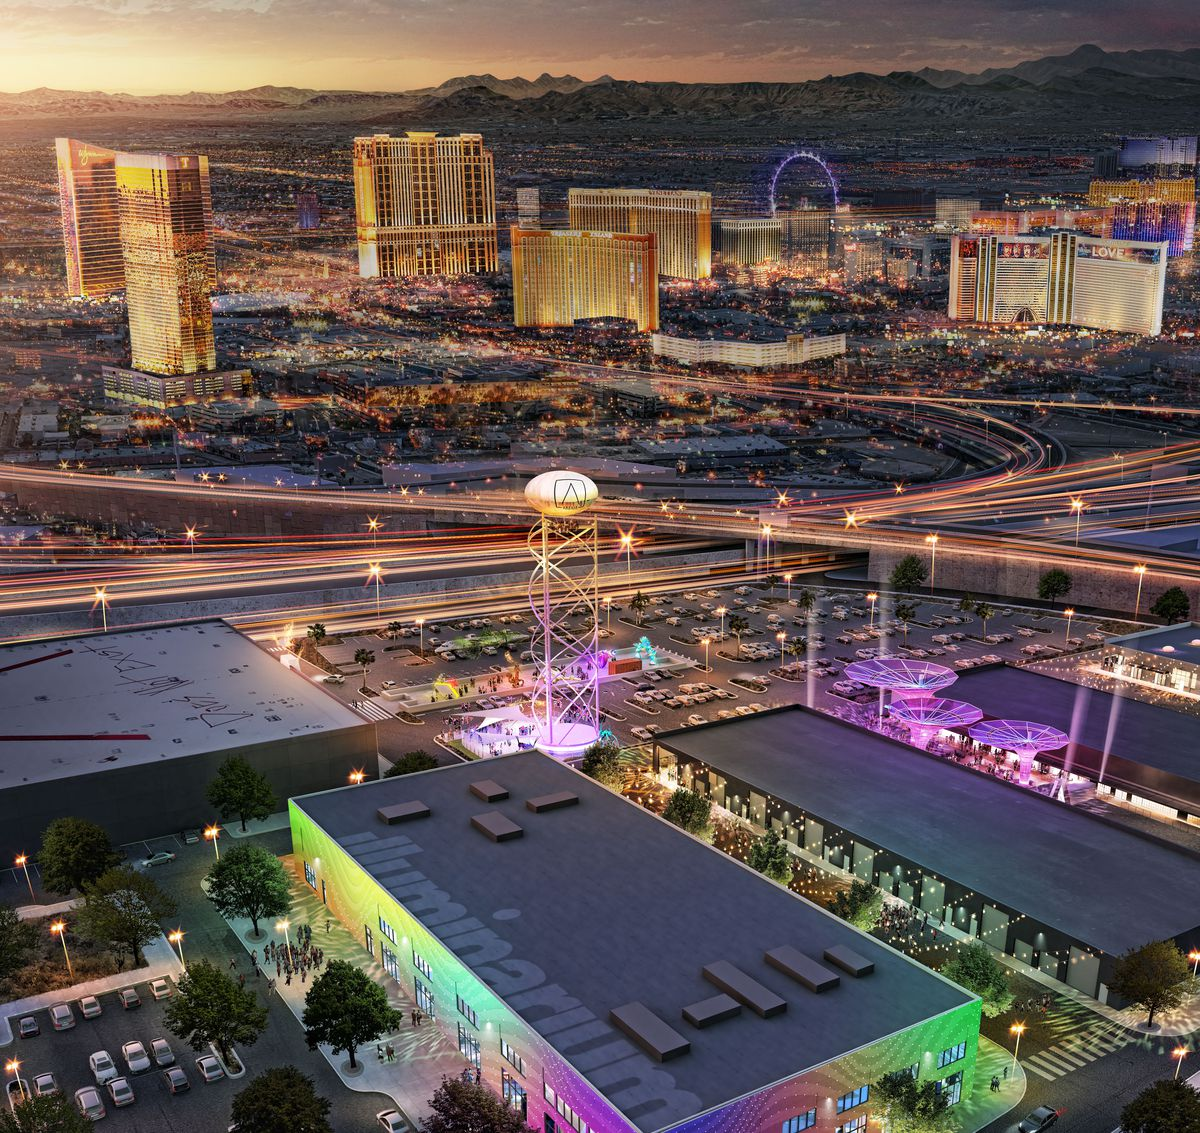 A view of an outdoor/indoor entertainment complex with the skyline of Las Vegas in the background